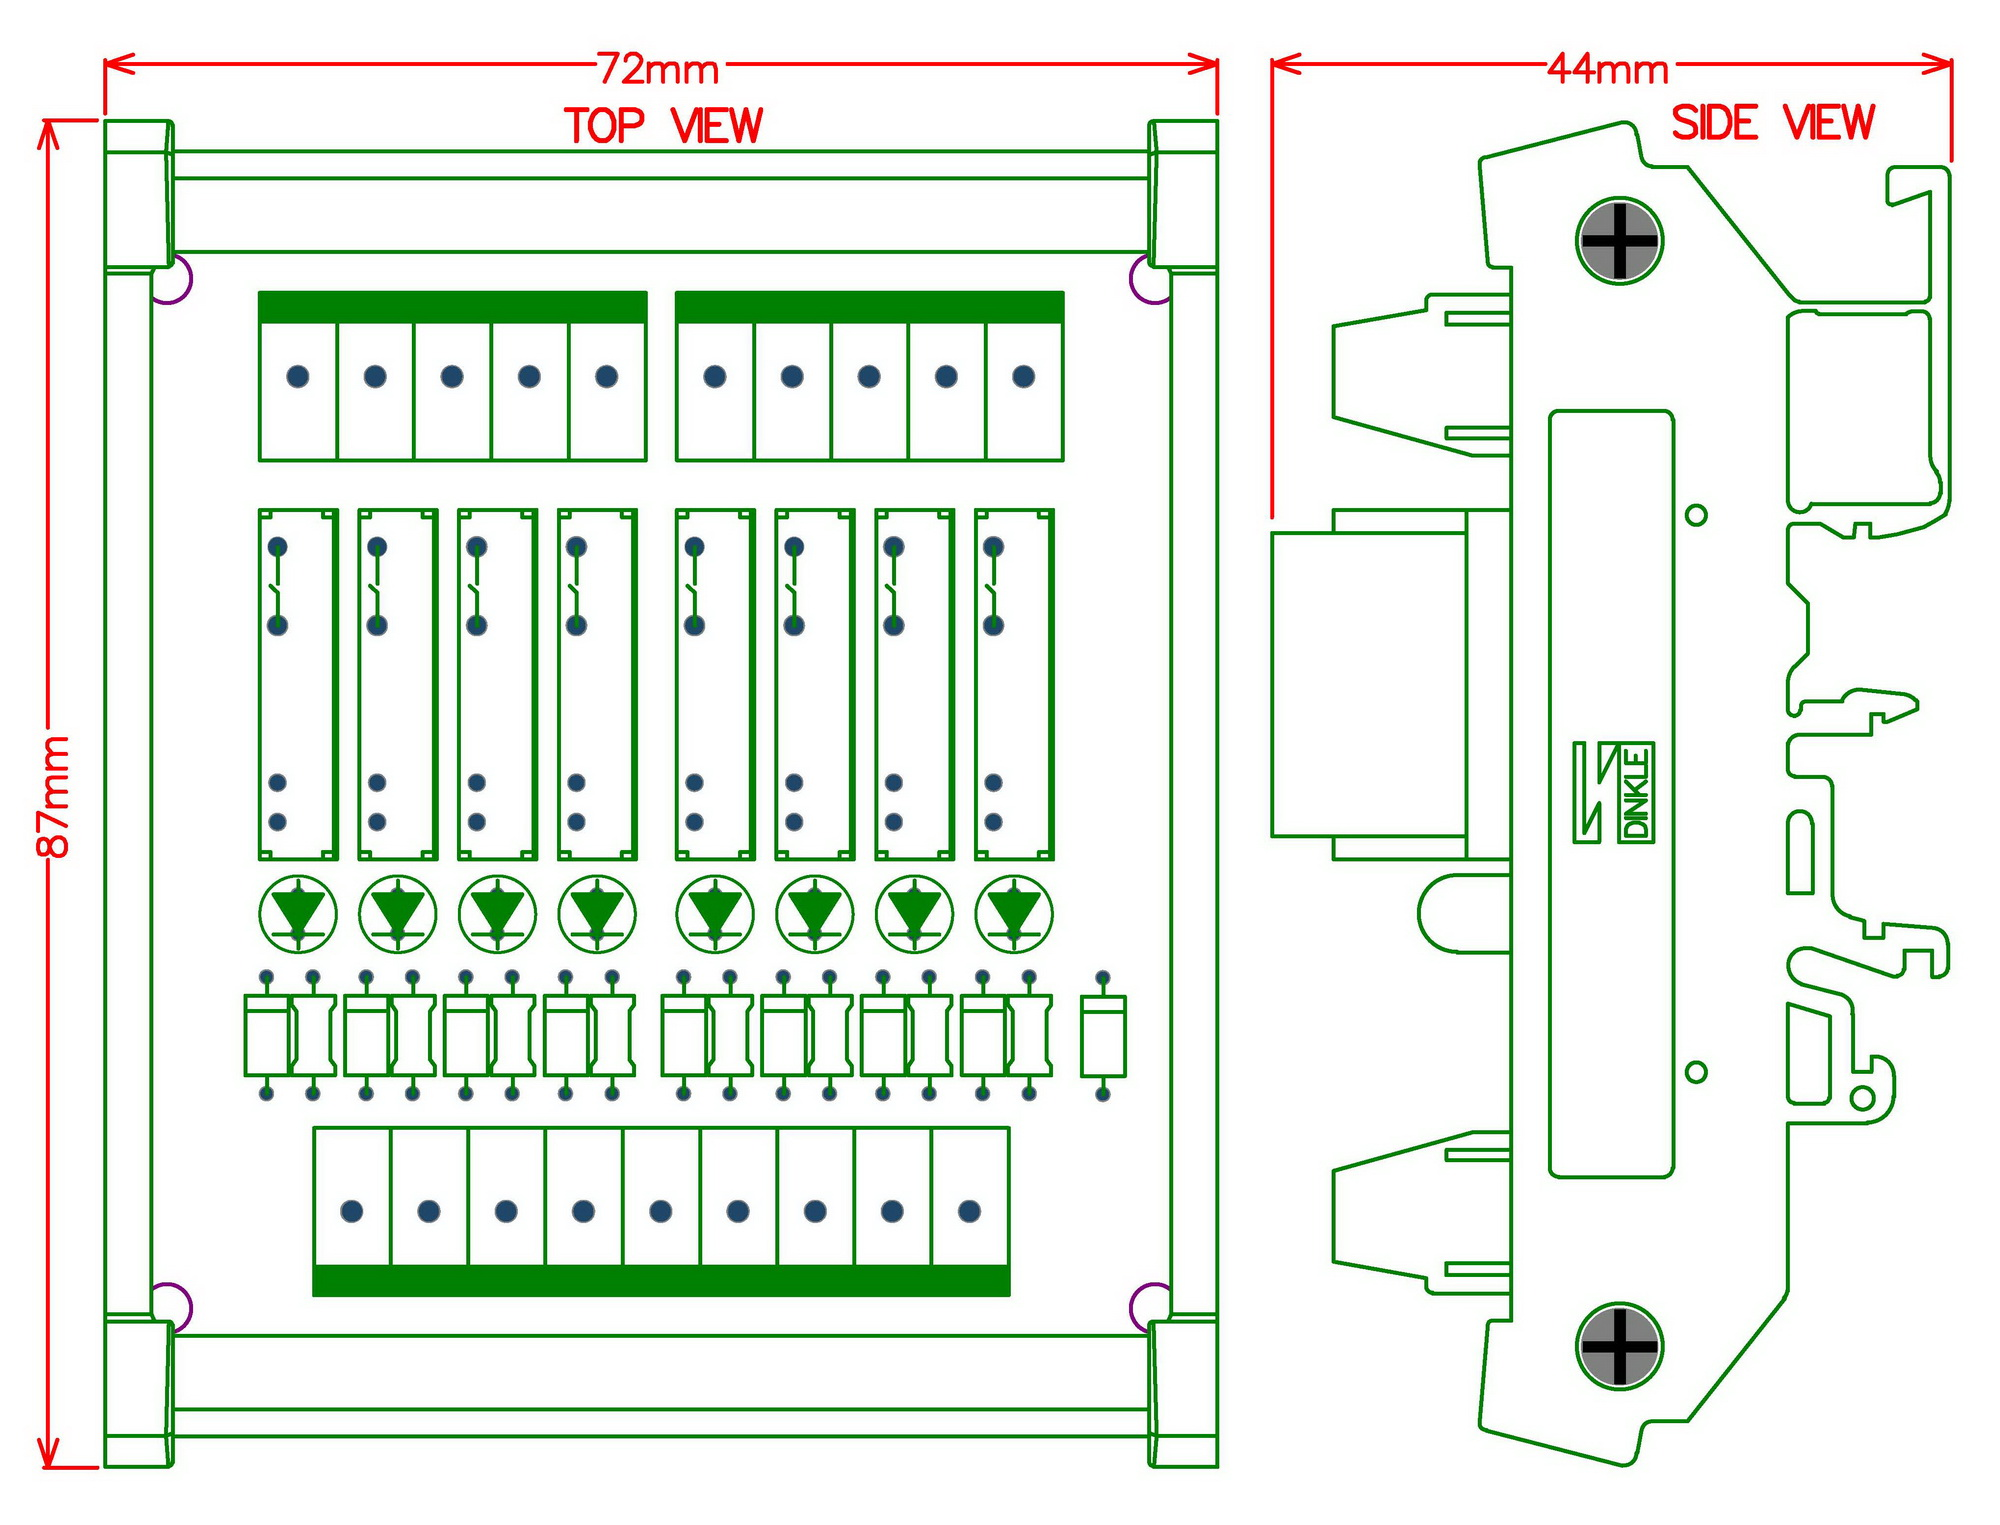 Image 5 - Slim DIN Rail Mount DC12V Sink/NPN 8 SPST NO 5A Power Relay Module, PA1a 12V-in Electronics Stocks from Electronic Components & Supplies